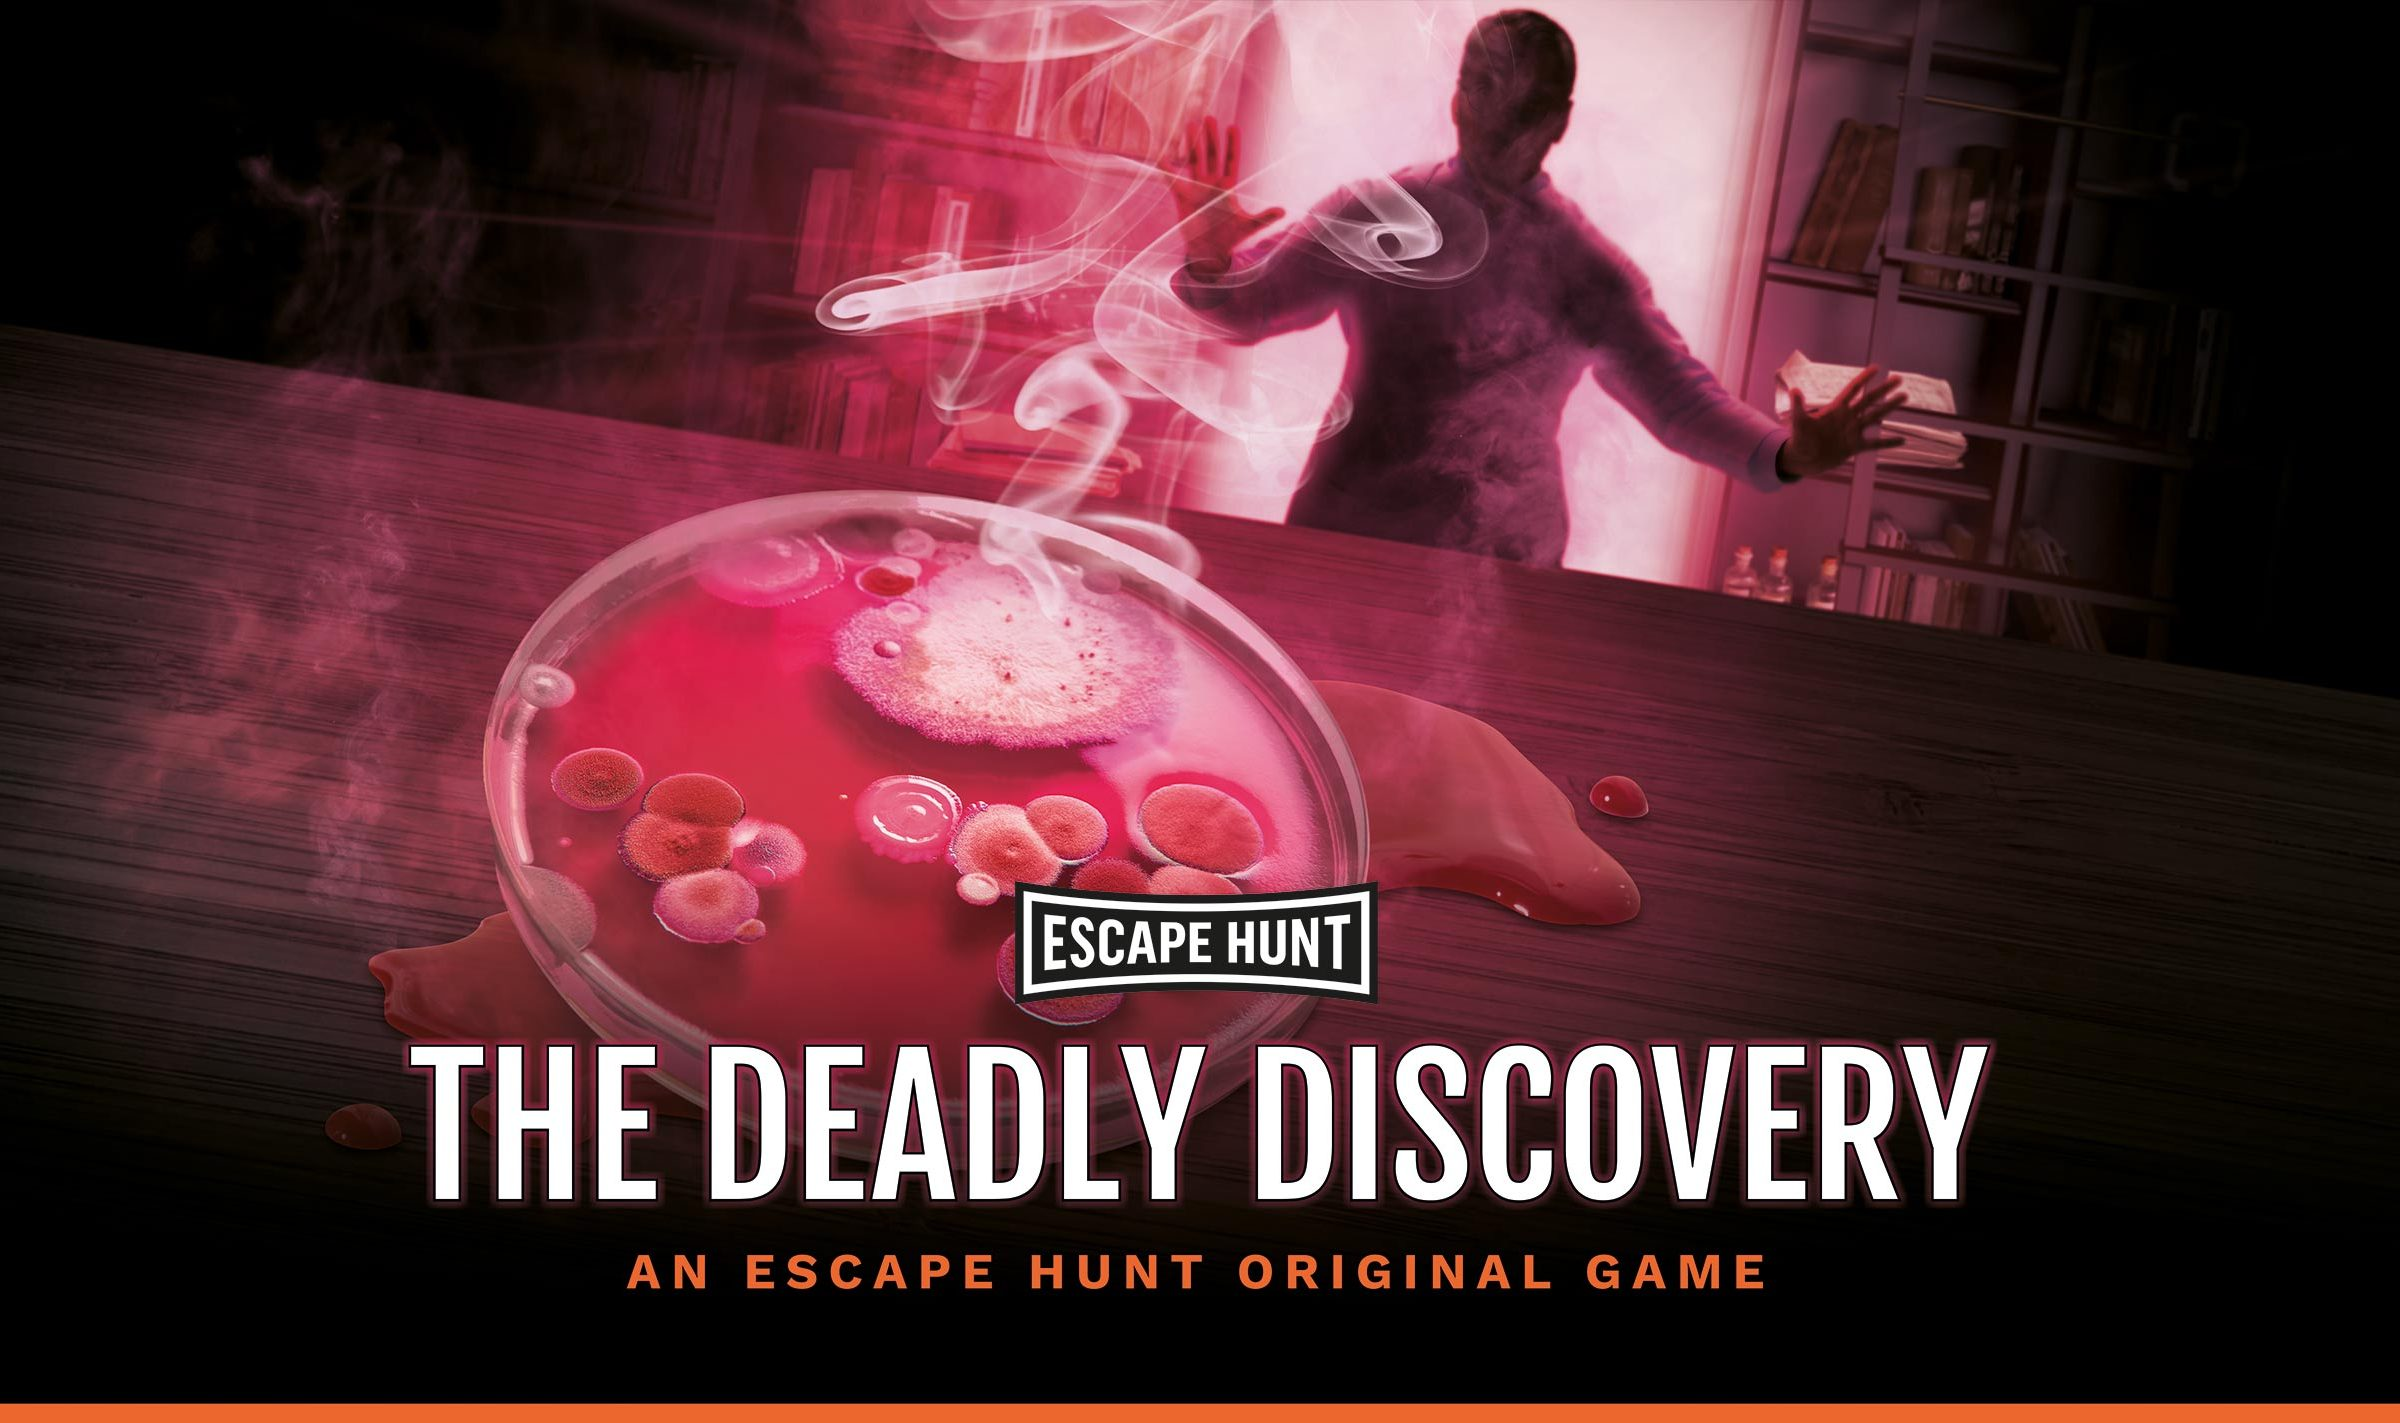 The Escape Hunt image cover the The Deadly Discovery game